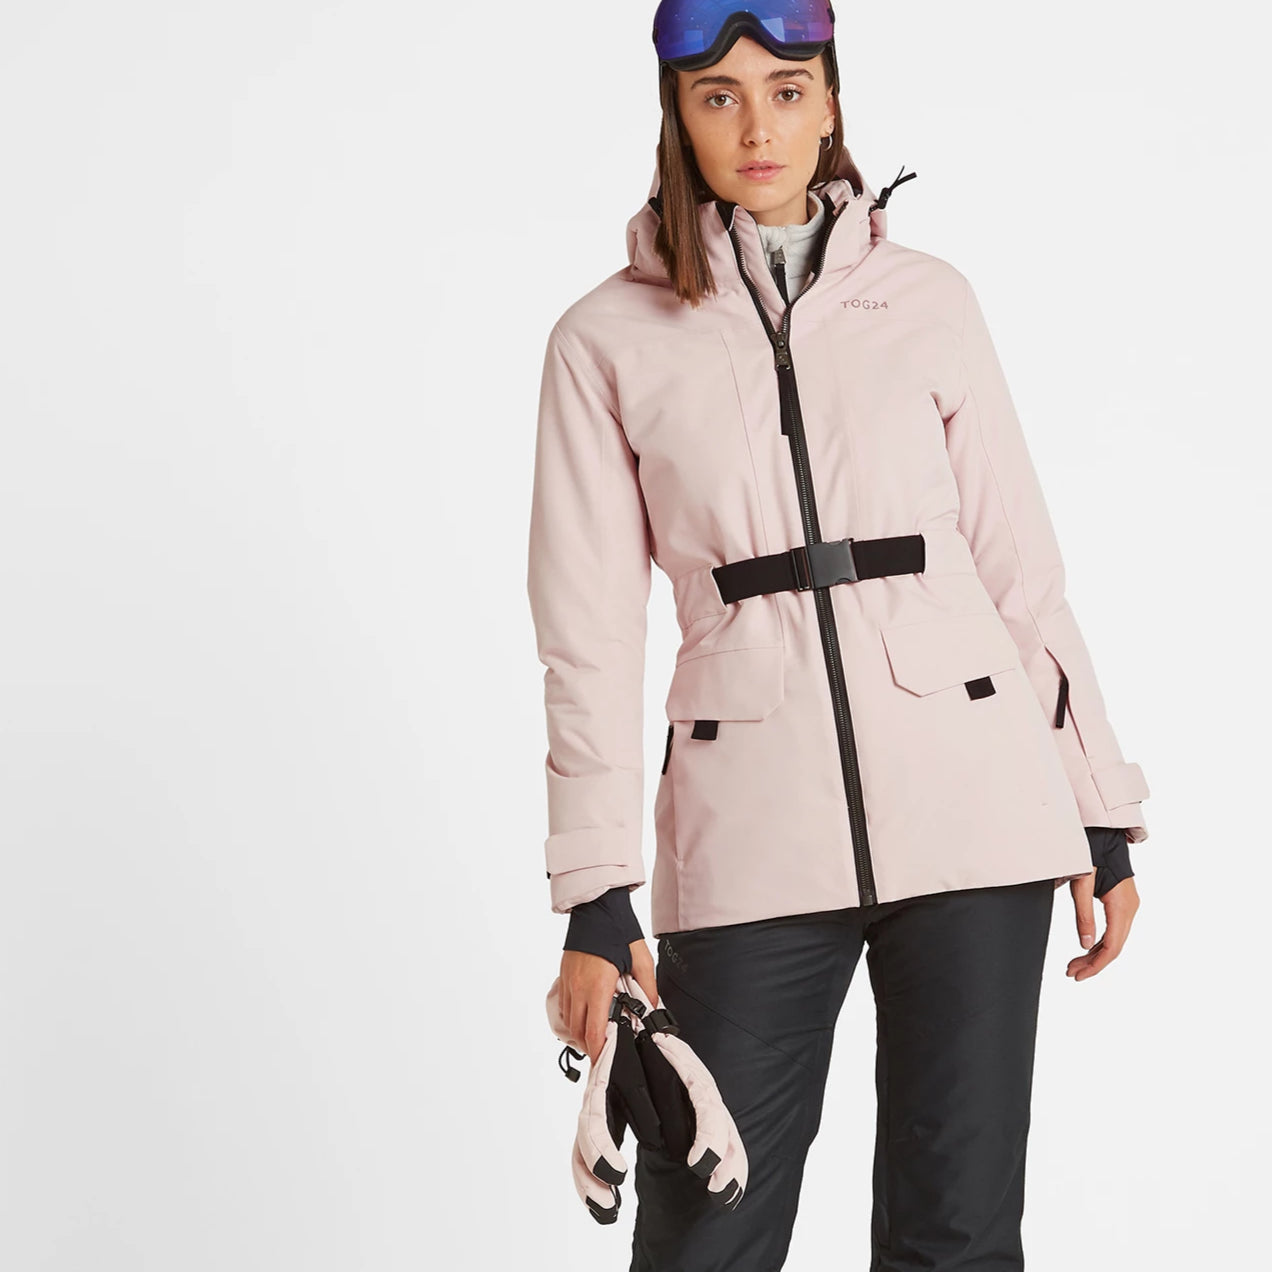 Helmsley Womens Waterproof Ski Jacket - Rose Pink